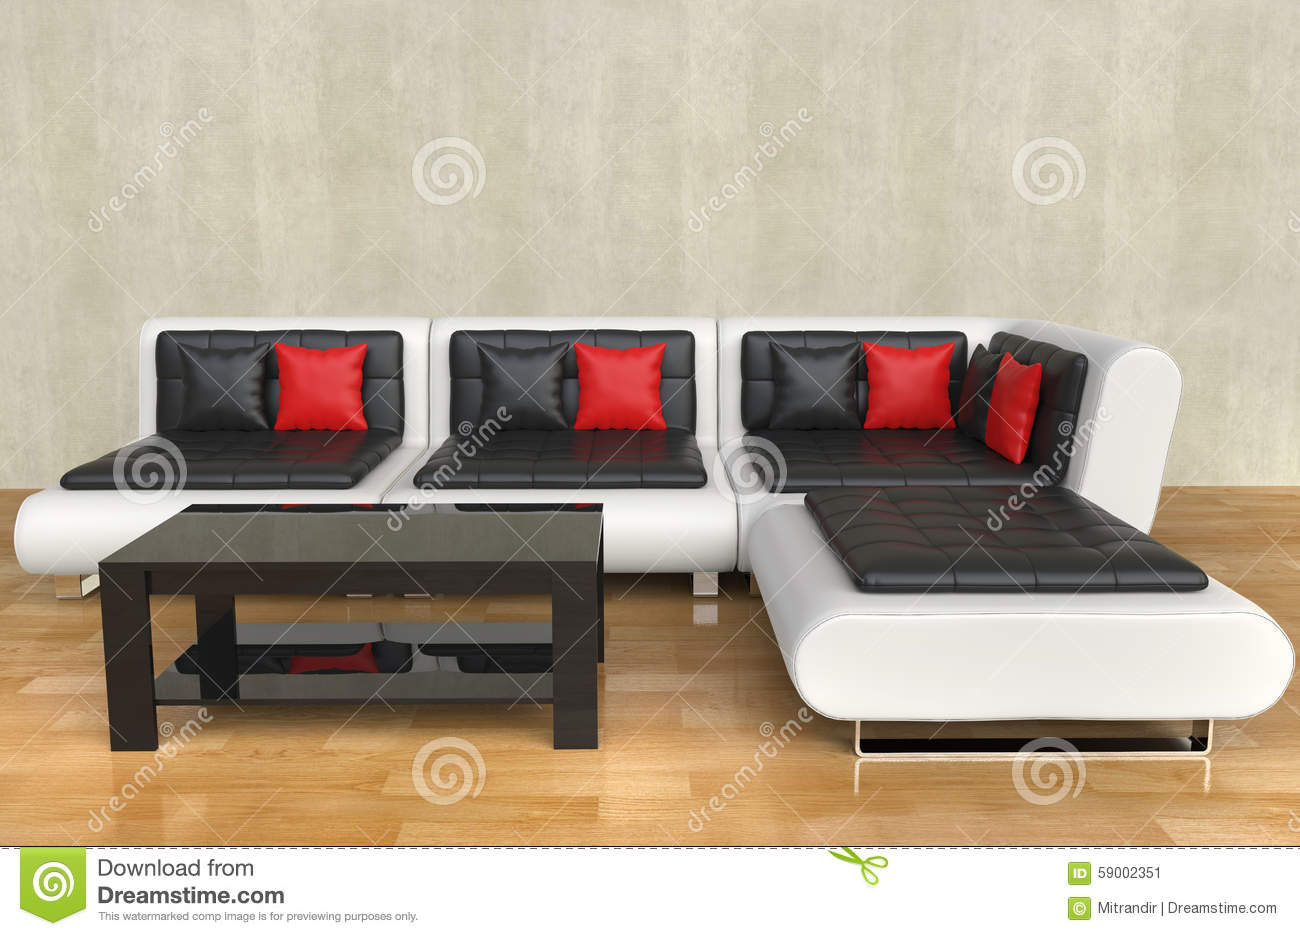 Pleasing Modern Living Room Red Pillows Stock Illustration Caraccident5 Cool Chair Designs And Ideas Caraccident5Info